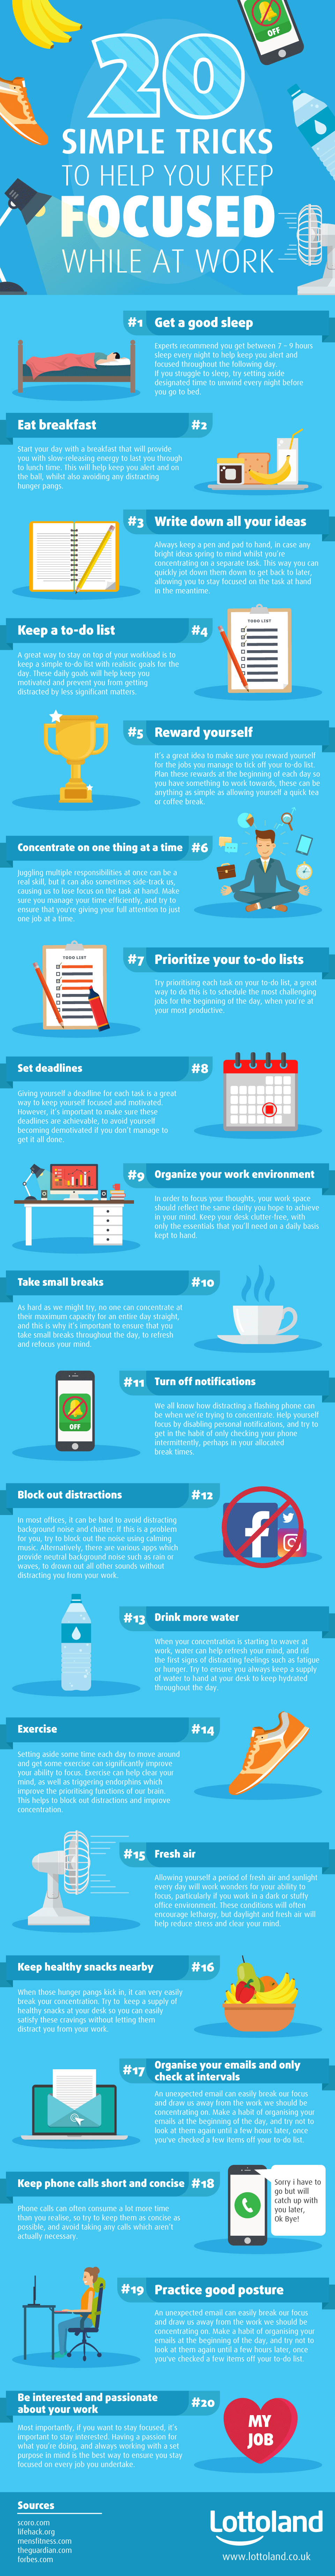 20 Simple Tricks to Help Keep You Focused at Work